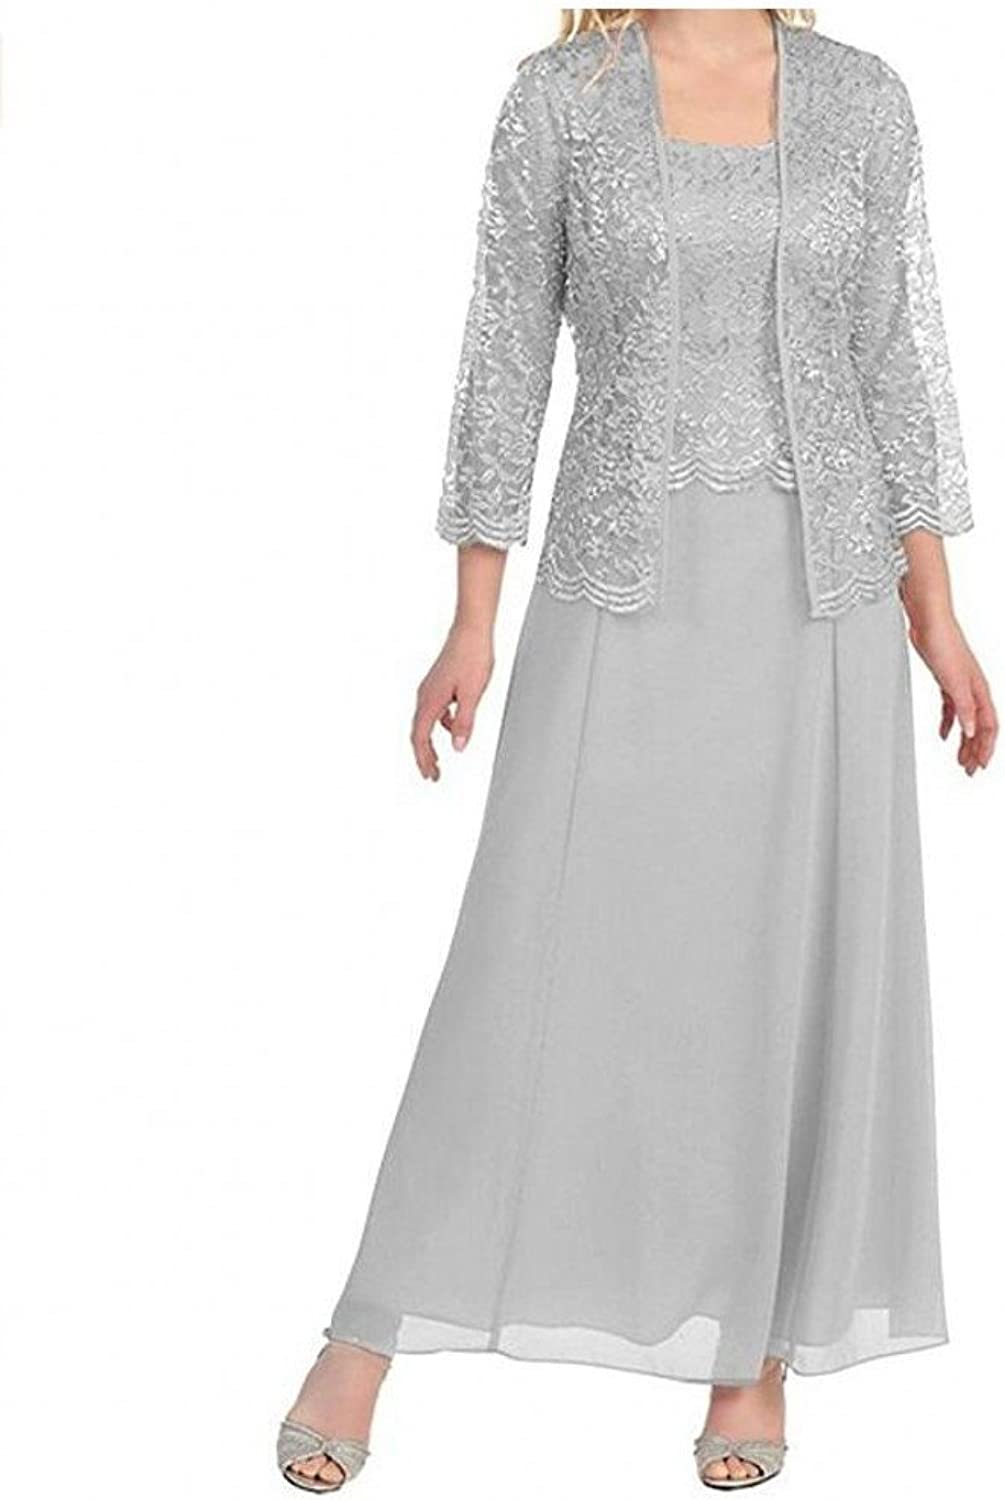 AK Beauty Womens Long Mother of the Bride Evening Formal Lace Dress with Jacket